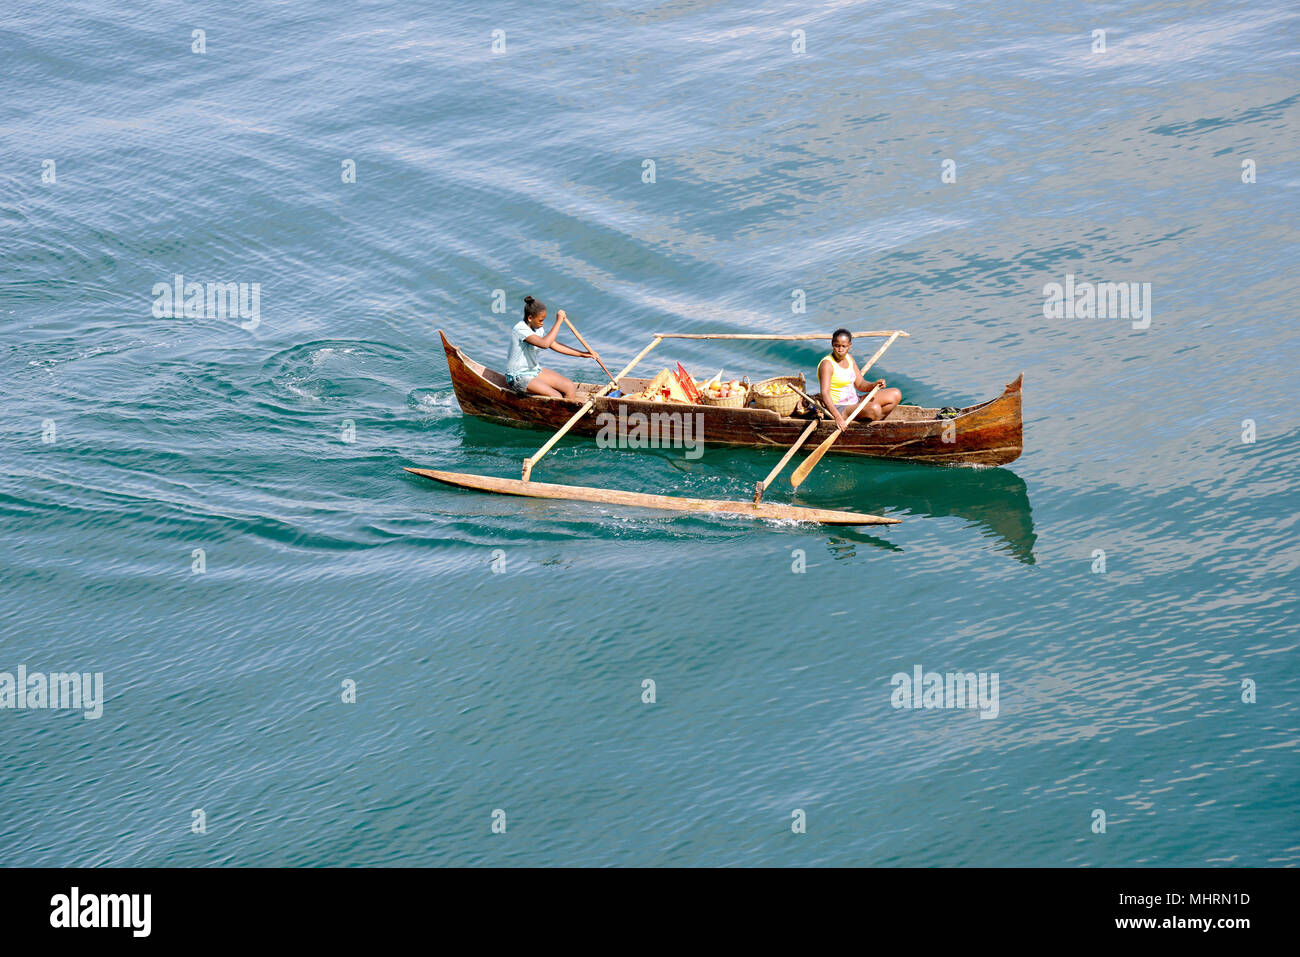 18 January 2018, Madagascar, Andoany: Traders in traditional boats offering fruit and souvenirs to boats lying at anchor off Andoany, capital of the island of Nosy Be off the north-west coast of Madagascar. | usage worldwide - Stock Image